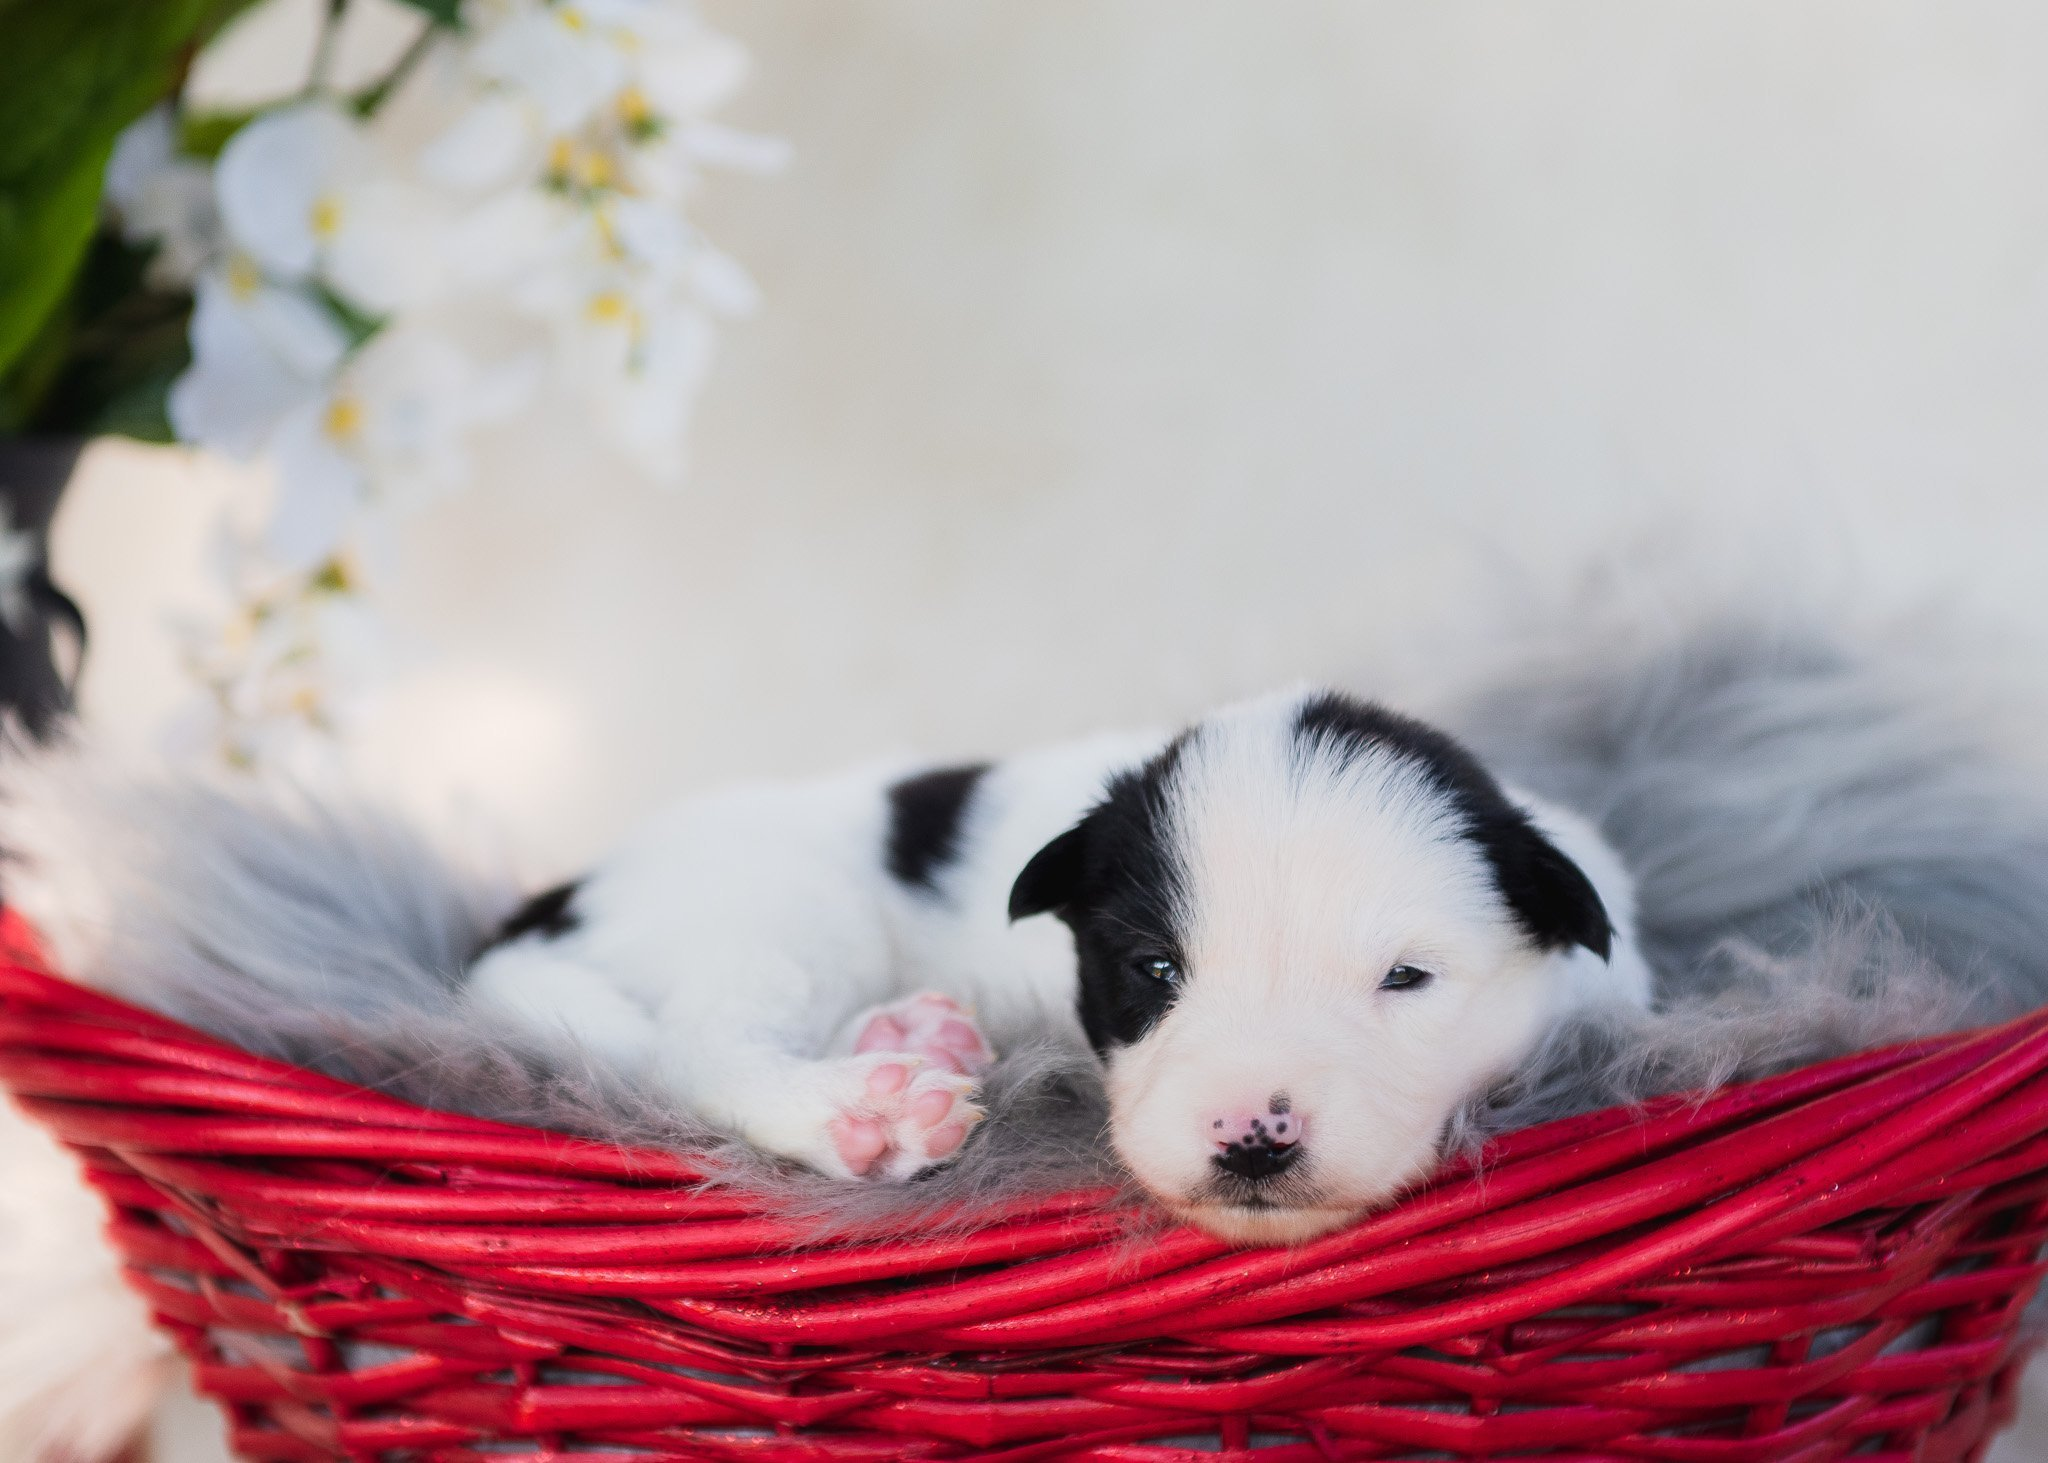 Black and white border collie puppy for sale laying in a red basket with pink toes.